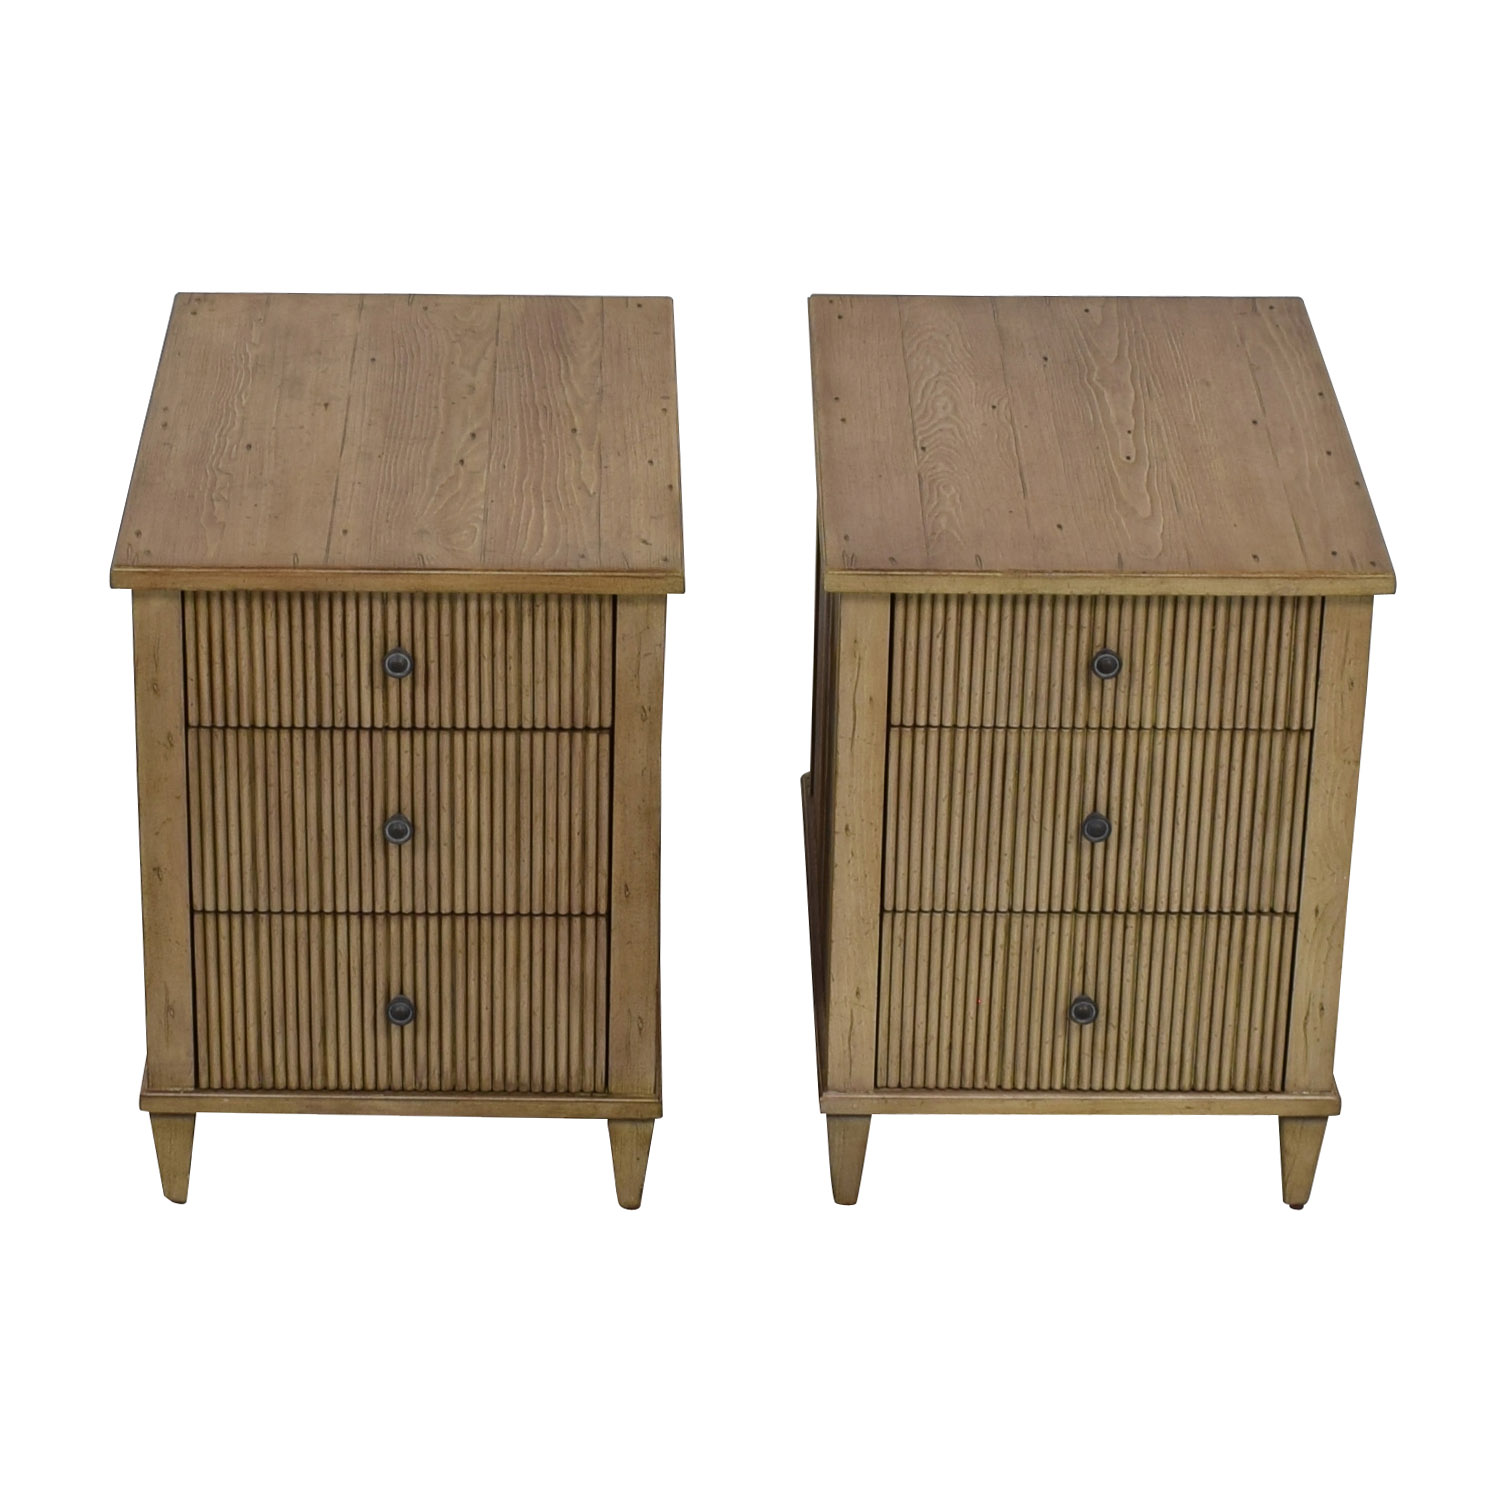 Buy Ethan Allen Three Drawer Nightstands Ethan Allen End Tables